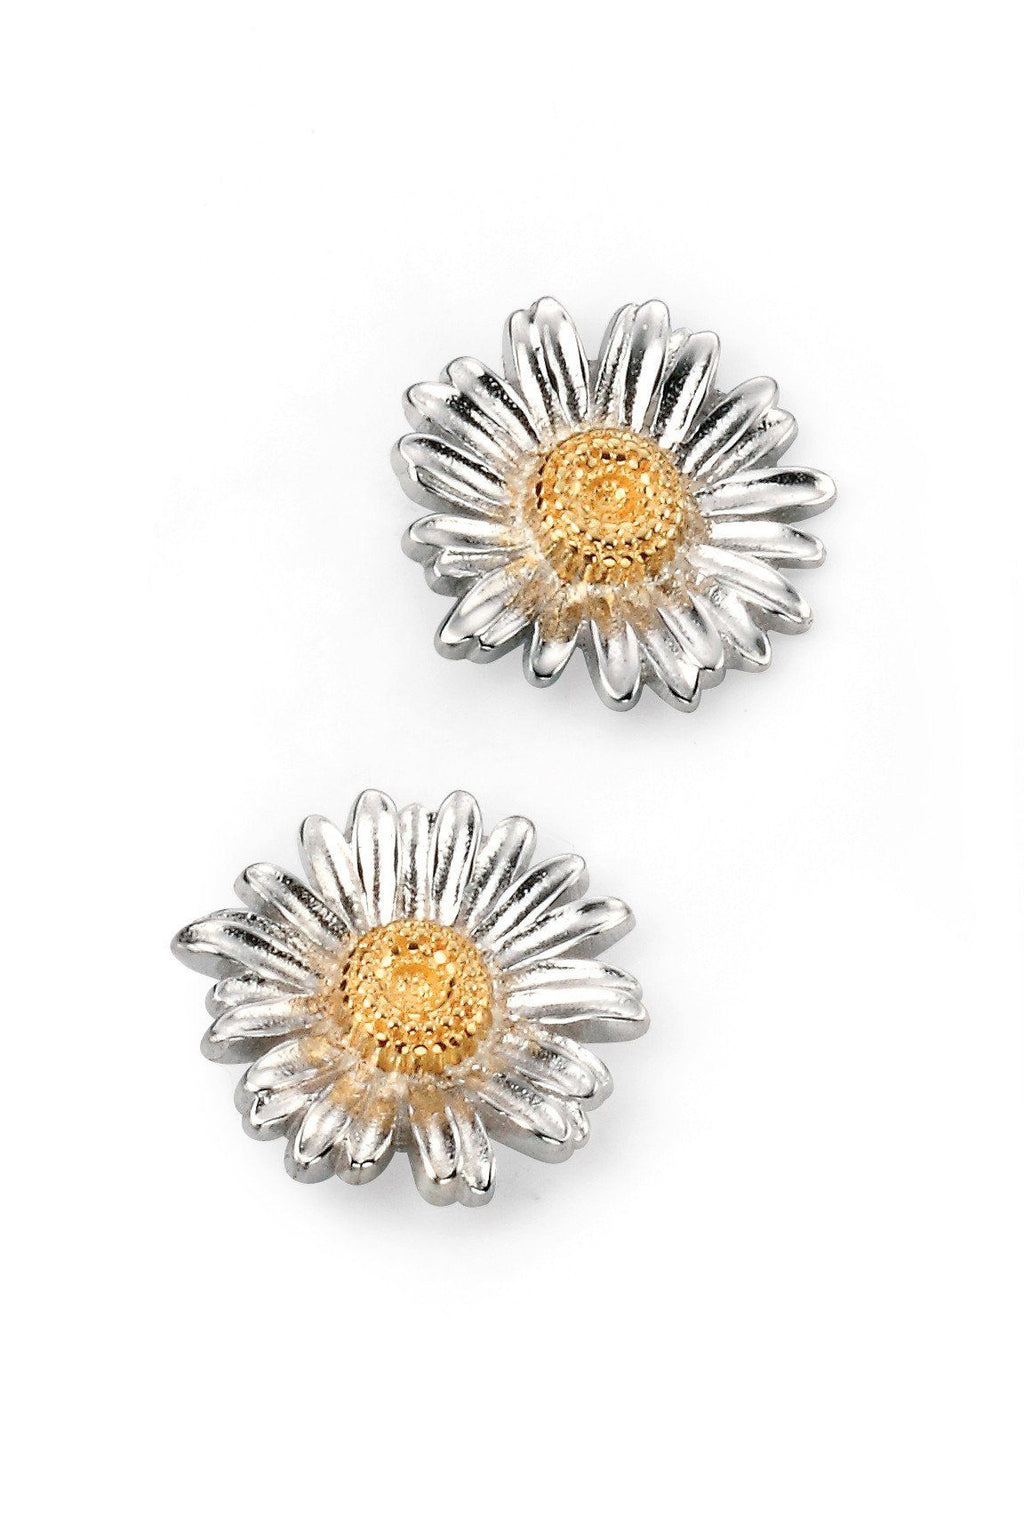 Sterling Silver Daisy Stud Earrings SV5090E - Jay's Jewellery